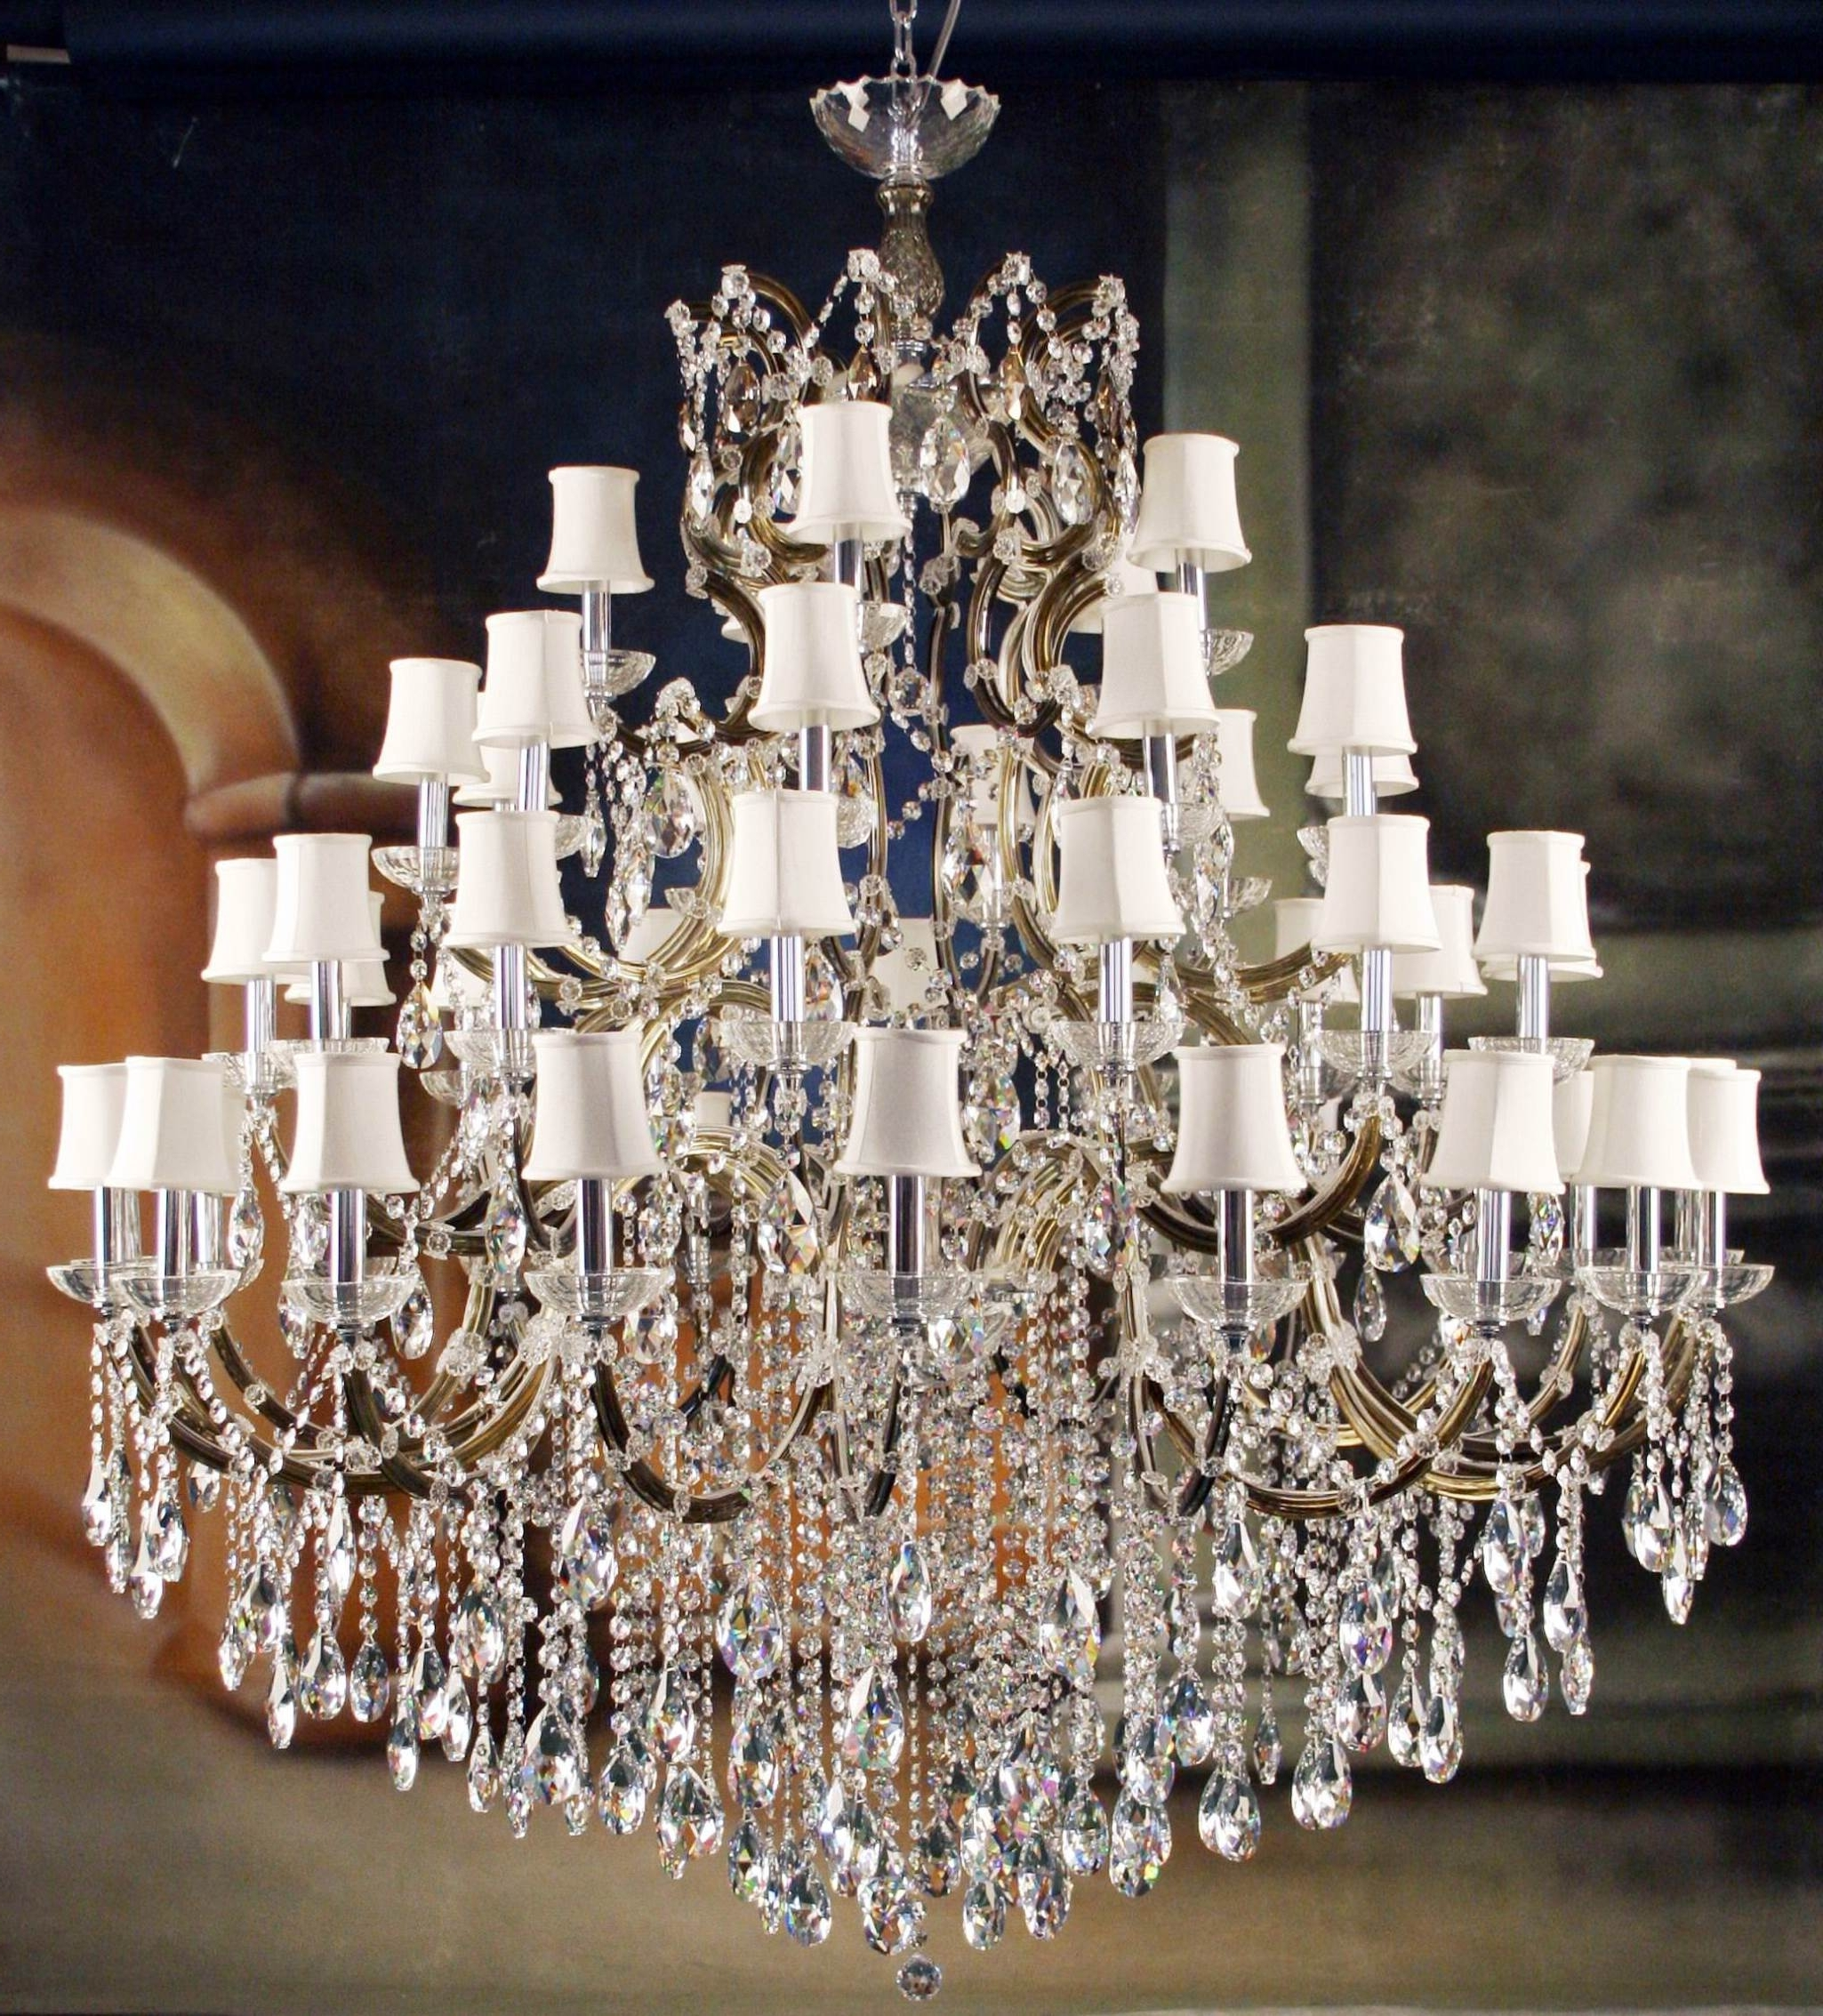 Expensive Crystal Chandeliers Regarding Famous Light : Fancy Living Room High Quality Crystal Chandeliers For Home (View 3 of 15)